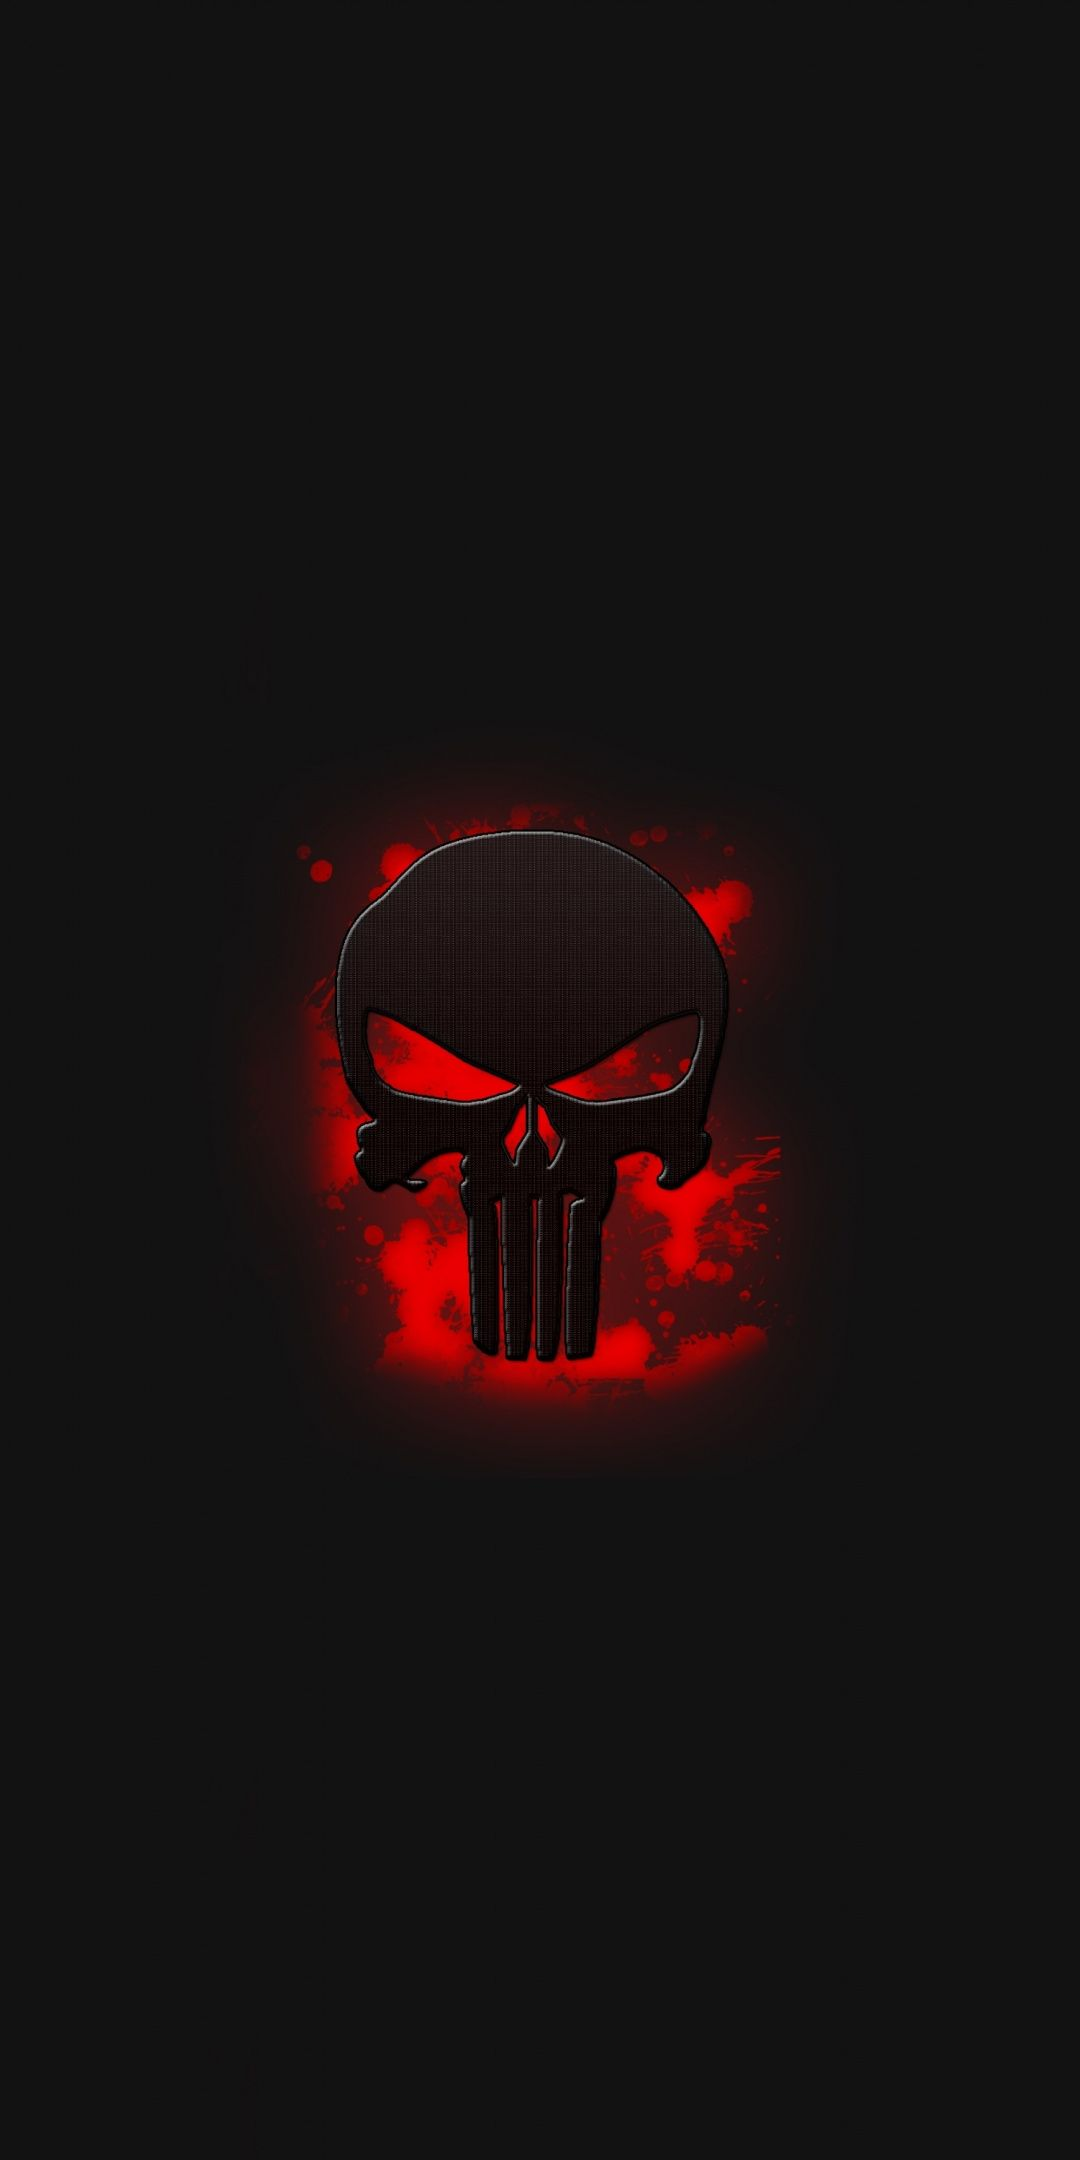 The Punisher Skull Logo Art 1080x2160 Wallpaper Punisher Artwork Punisher Logo Punisher Art